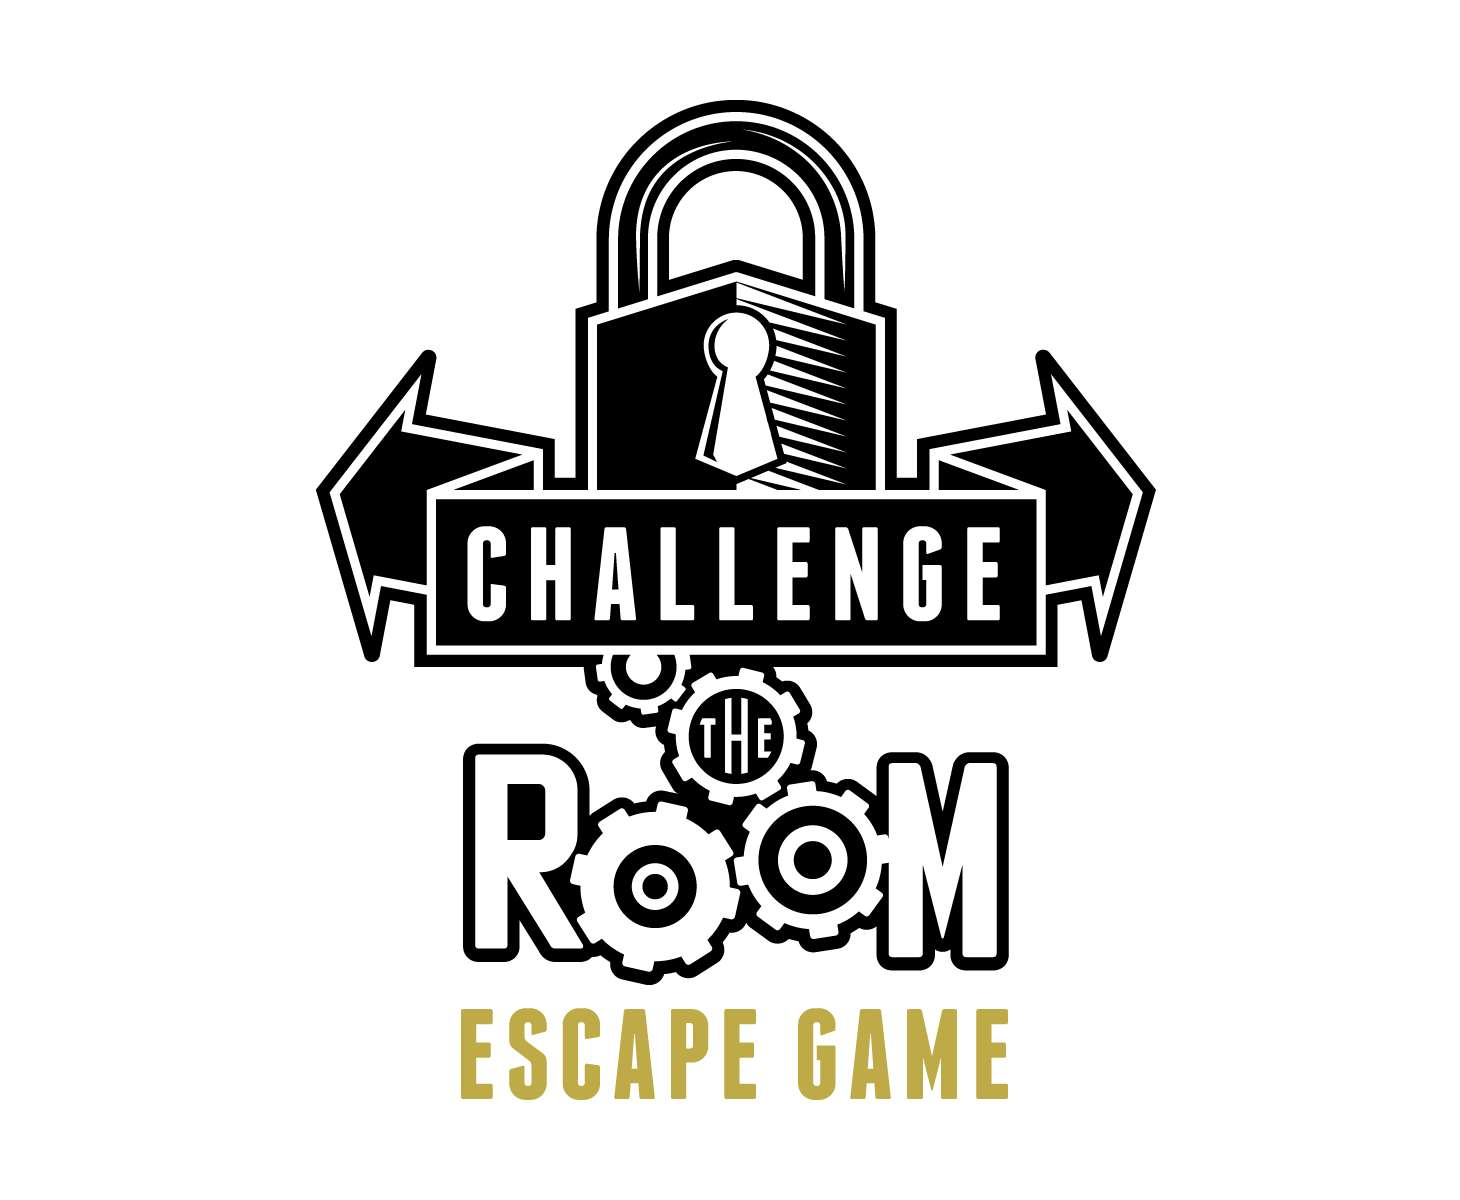 Logo Challenge The Room